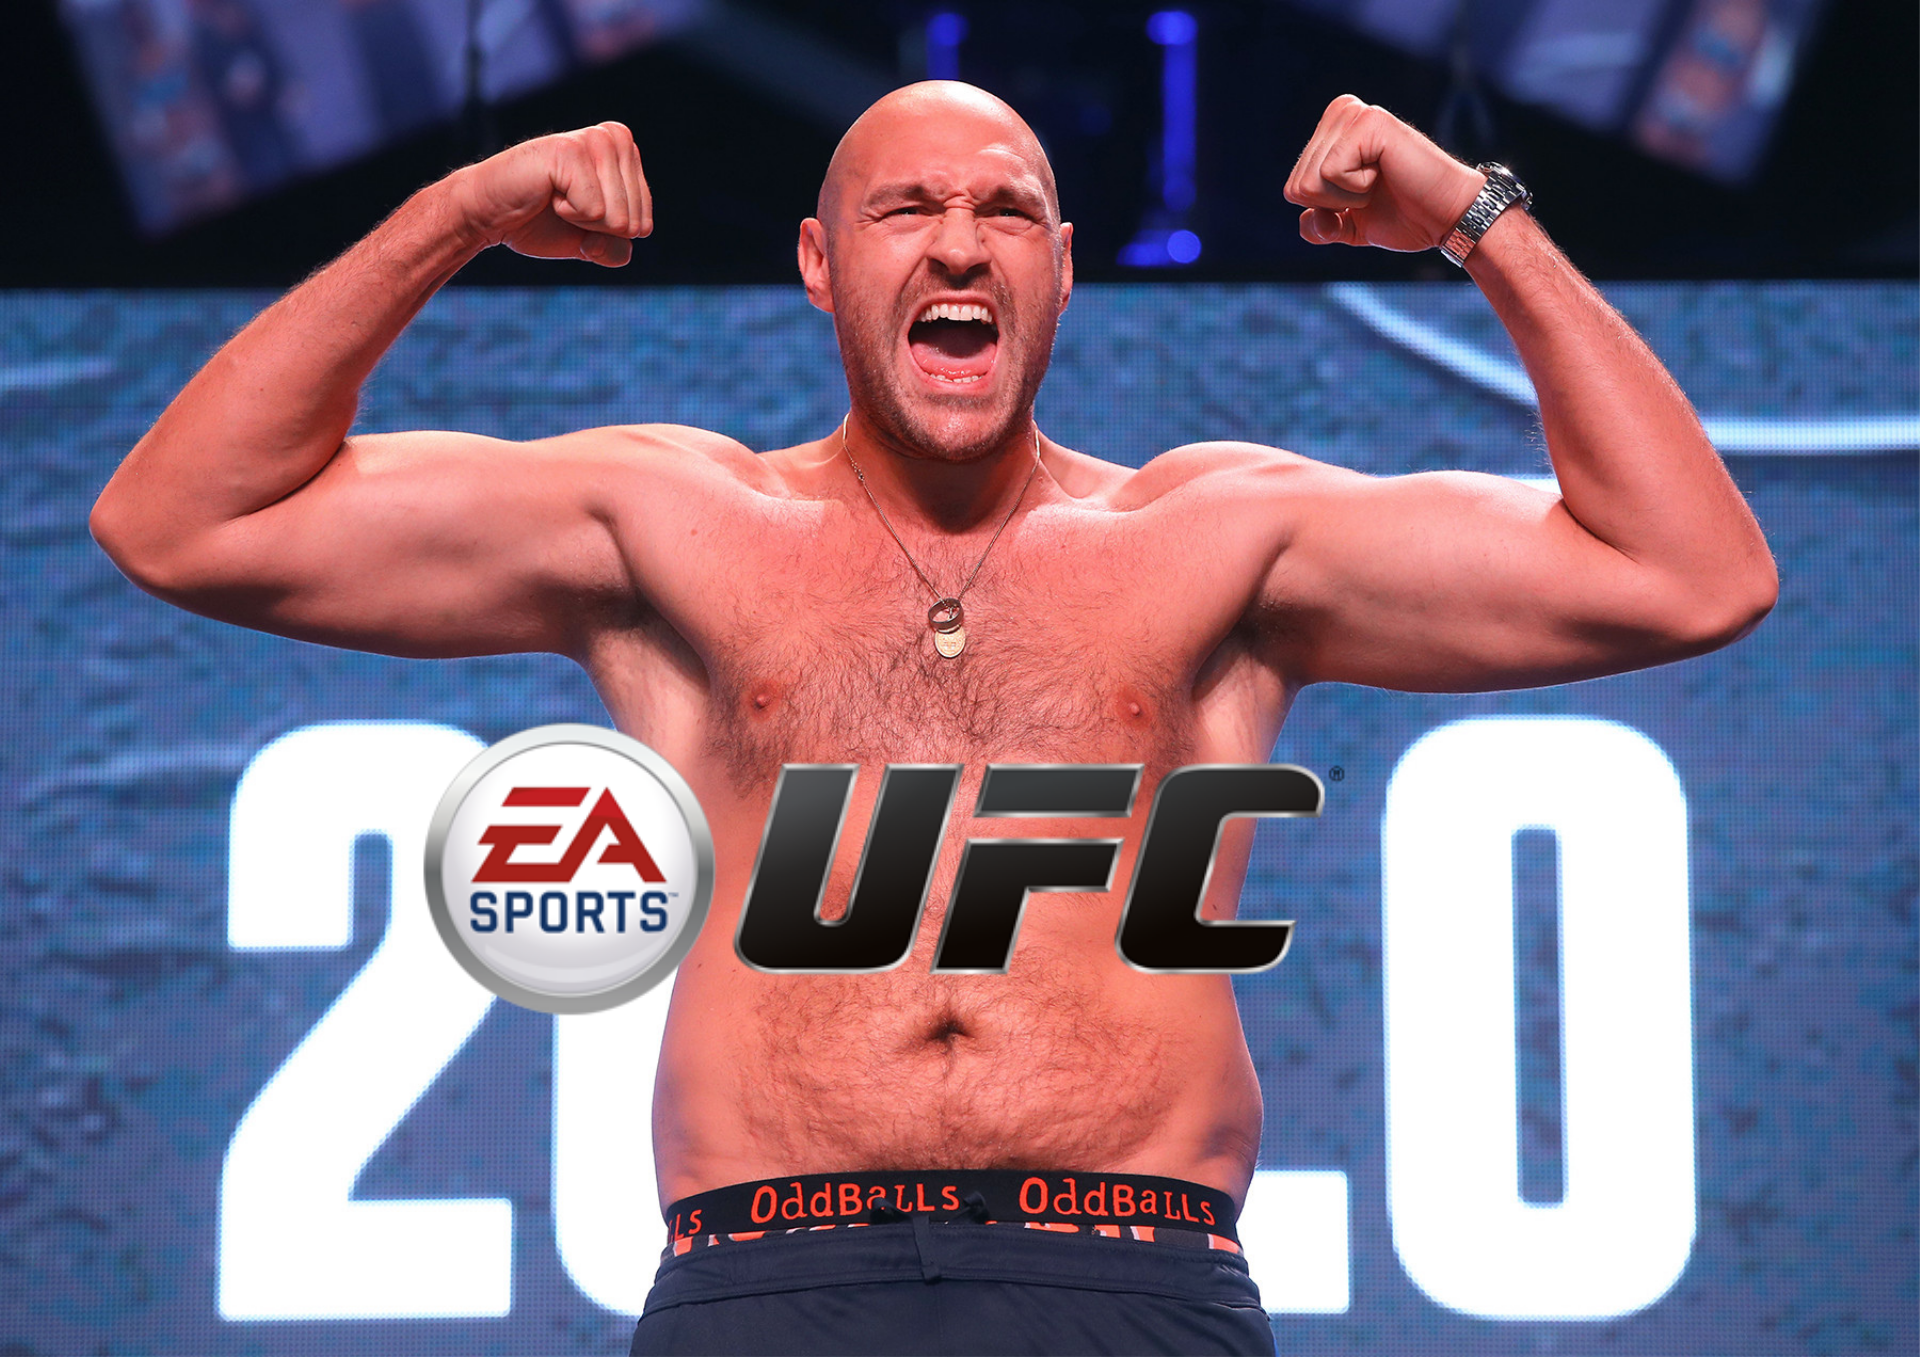 Dana White hints Tyson Fury may be a playable character in UFC 4 game! - Tyson Fury